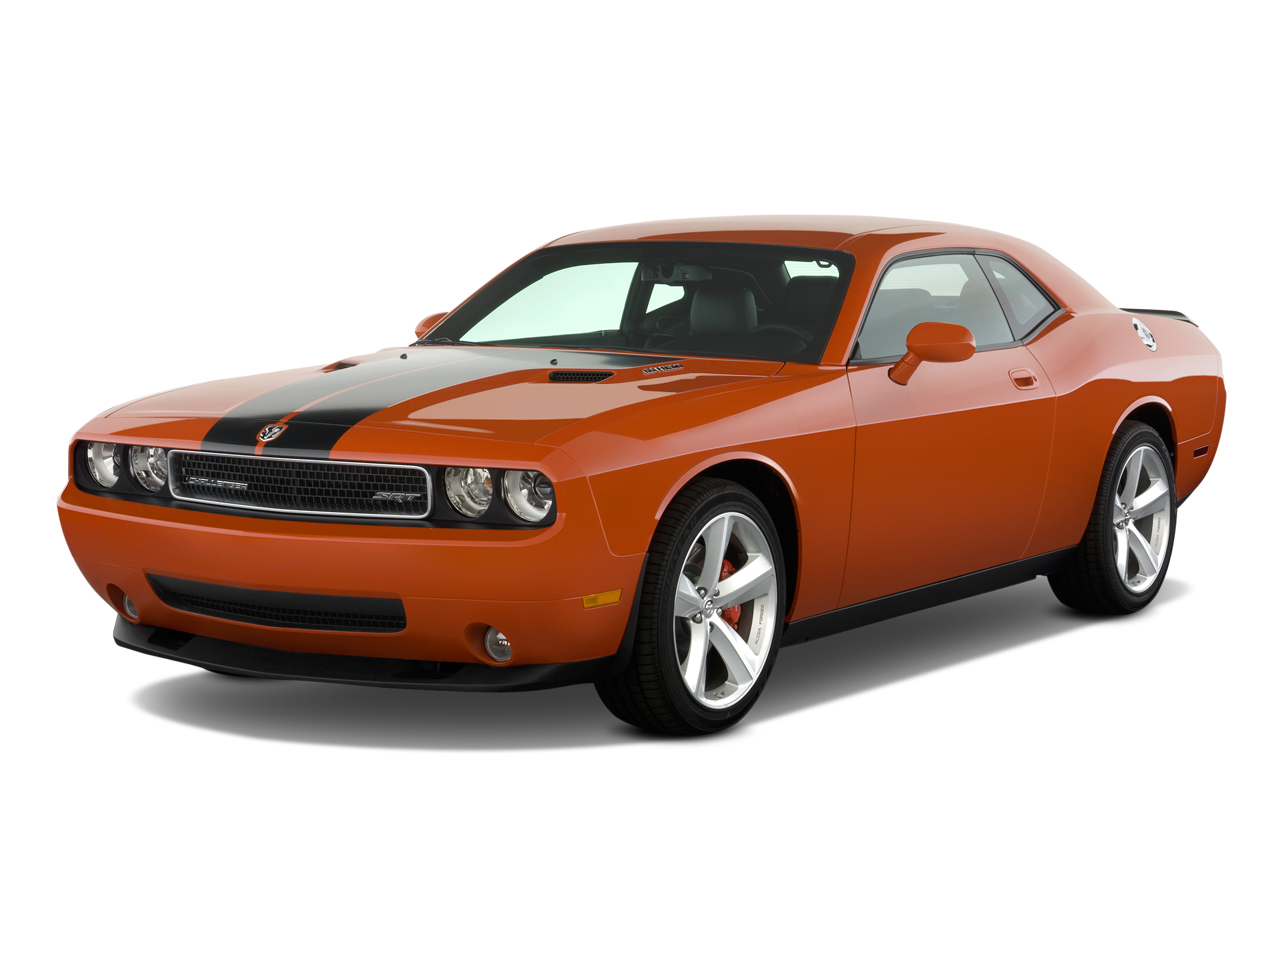 2011 Dodge Challenger SRT8 to get 480 Horsepower 6.4-liter V-8 Engine